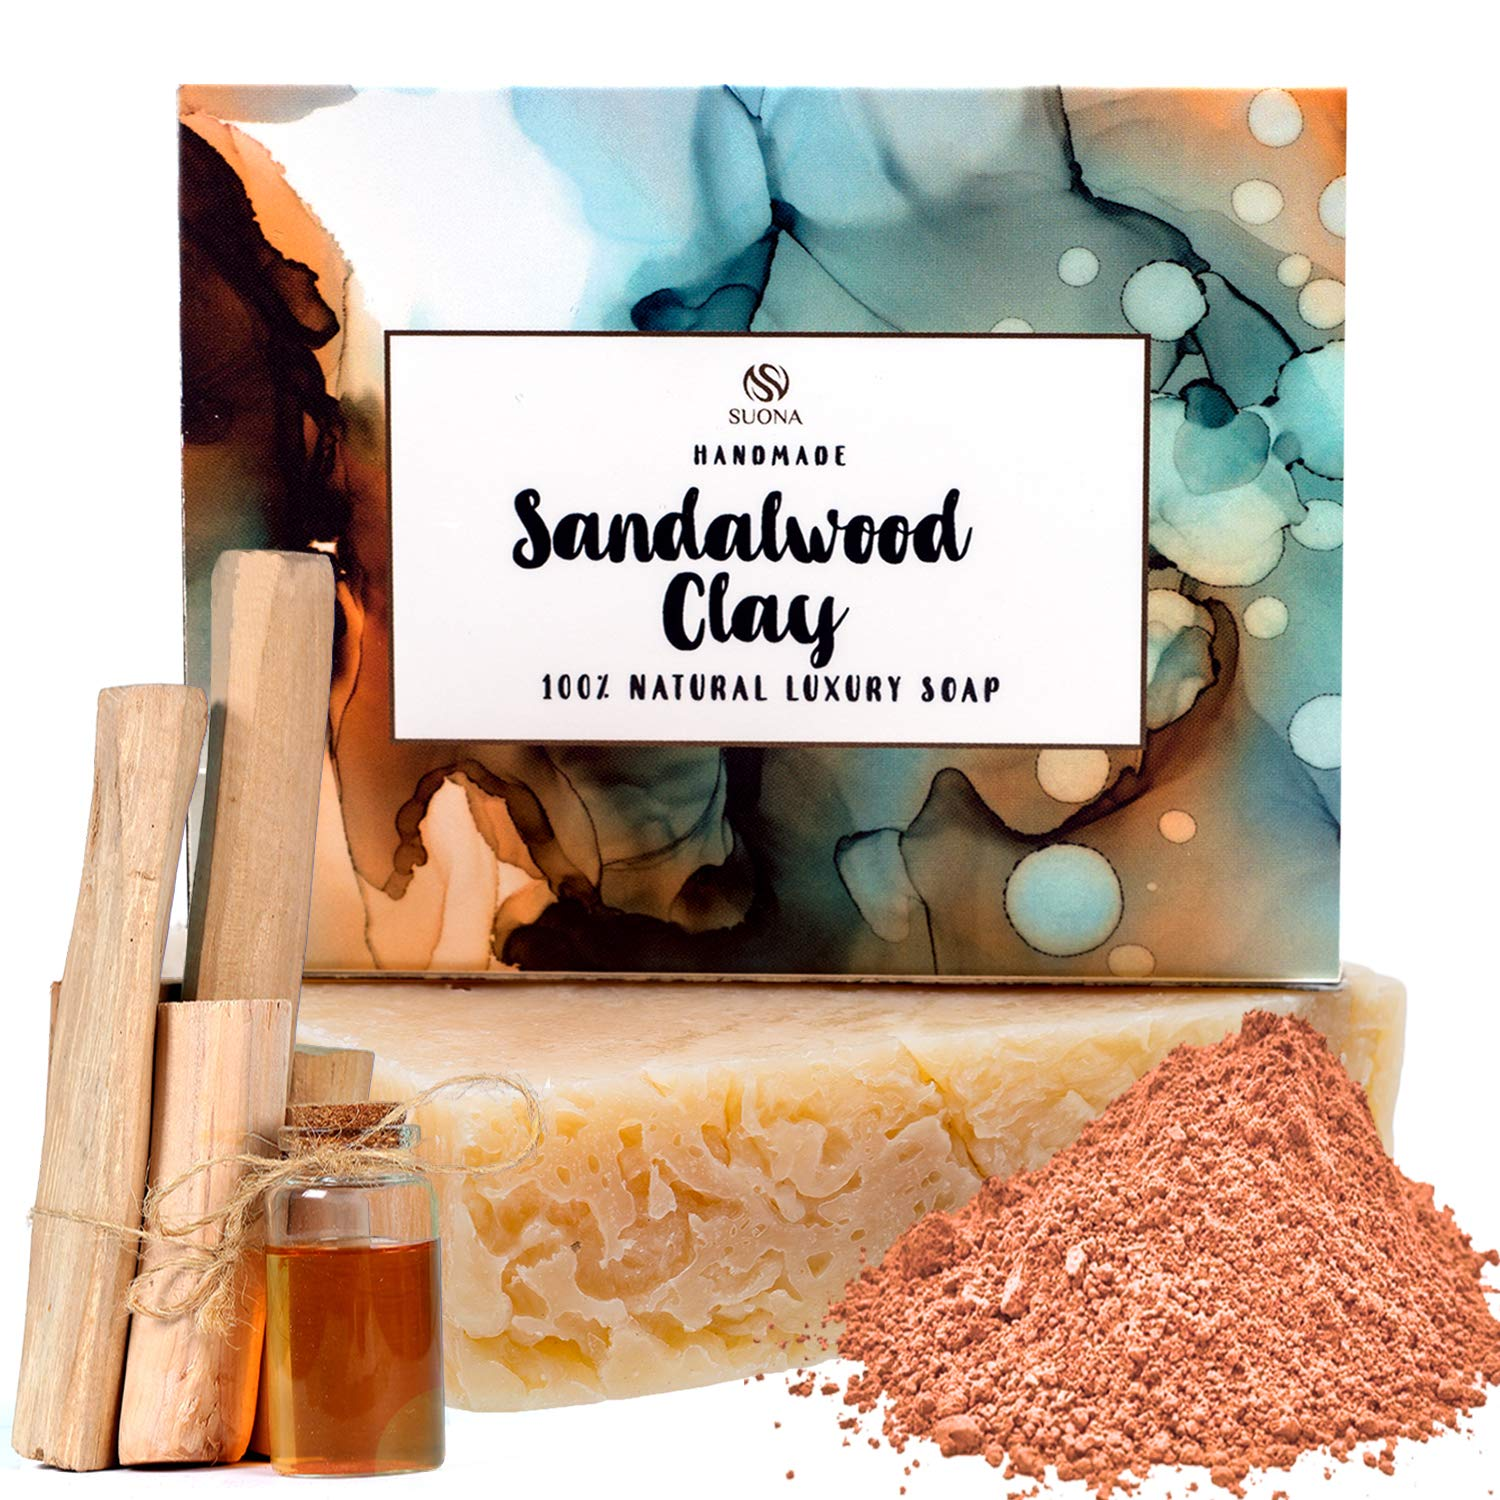 Sandalwood Goats Milk Soap -100% Natural Moisturizing Face & Body Wash-Gentle Exfoliating Soap Bar with Coconut Oil,Shea Butter,Kaolin Clay + Patchouli.Handmade Organic Cold Pressed Soap. Top Gift Idea.